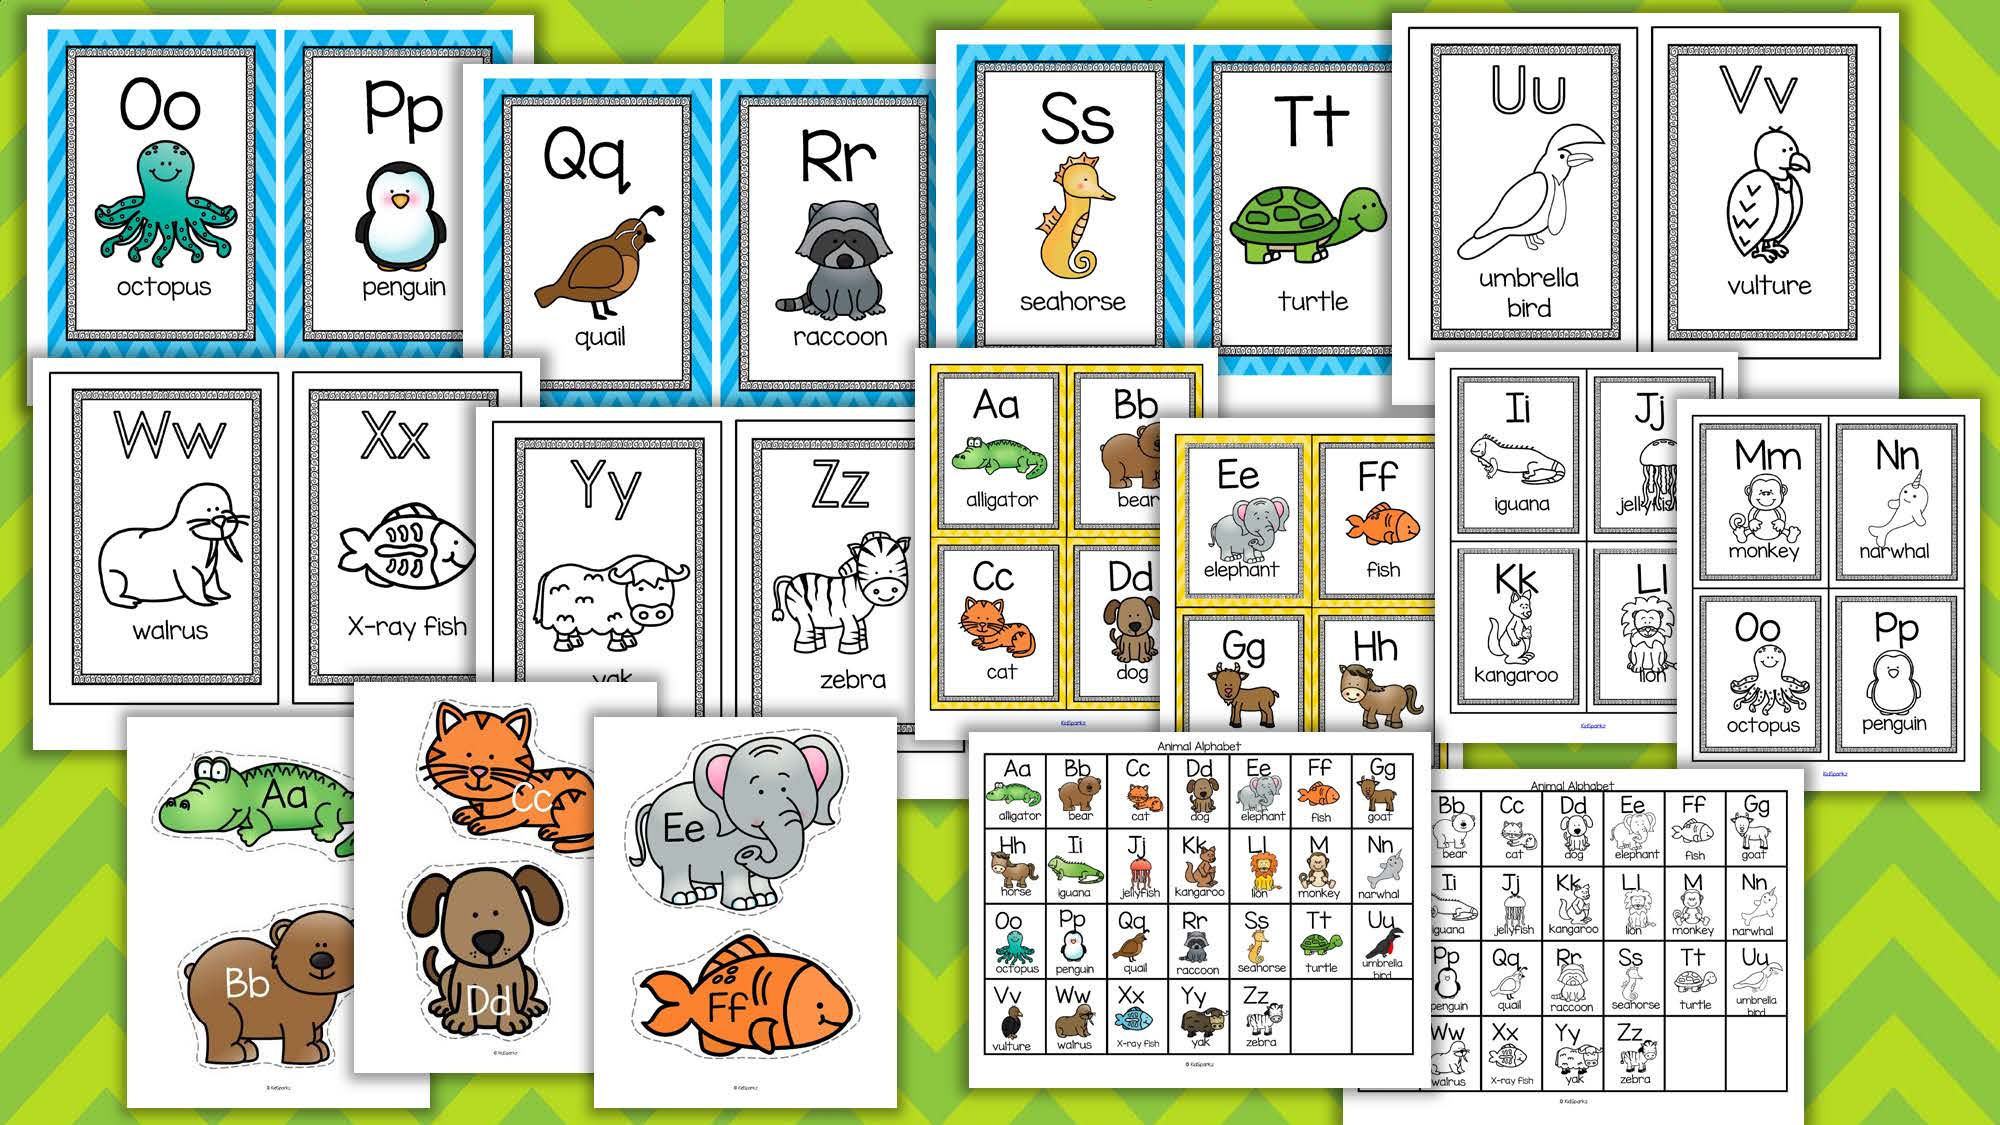 alphabet animals posters flash cards game cards large cut outs